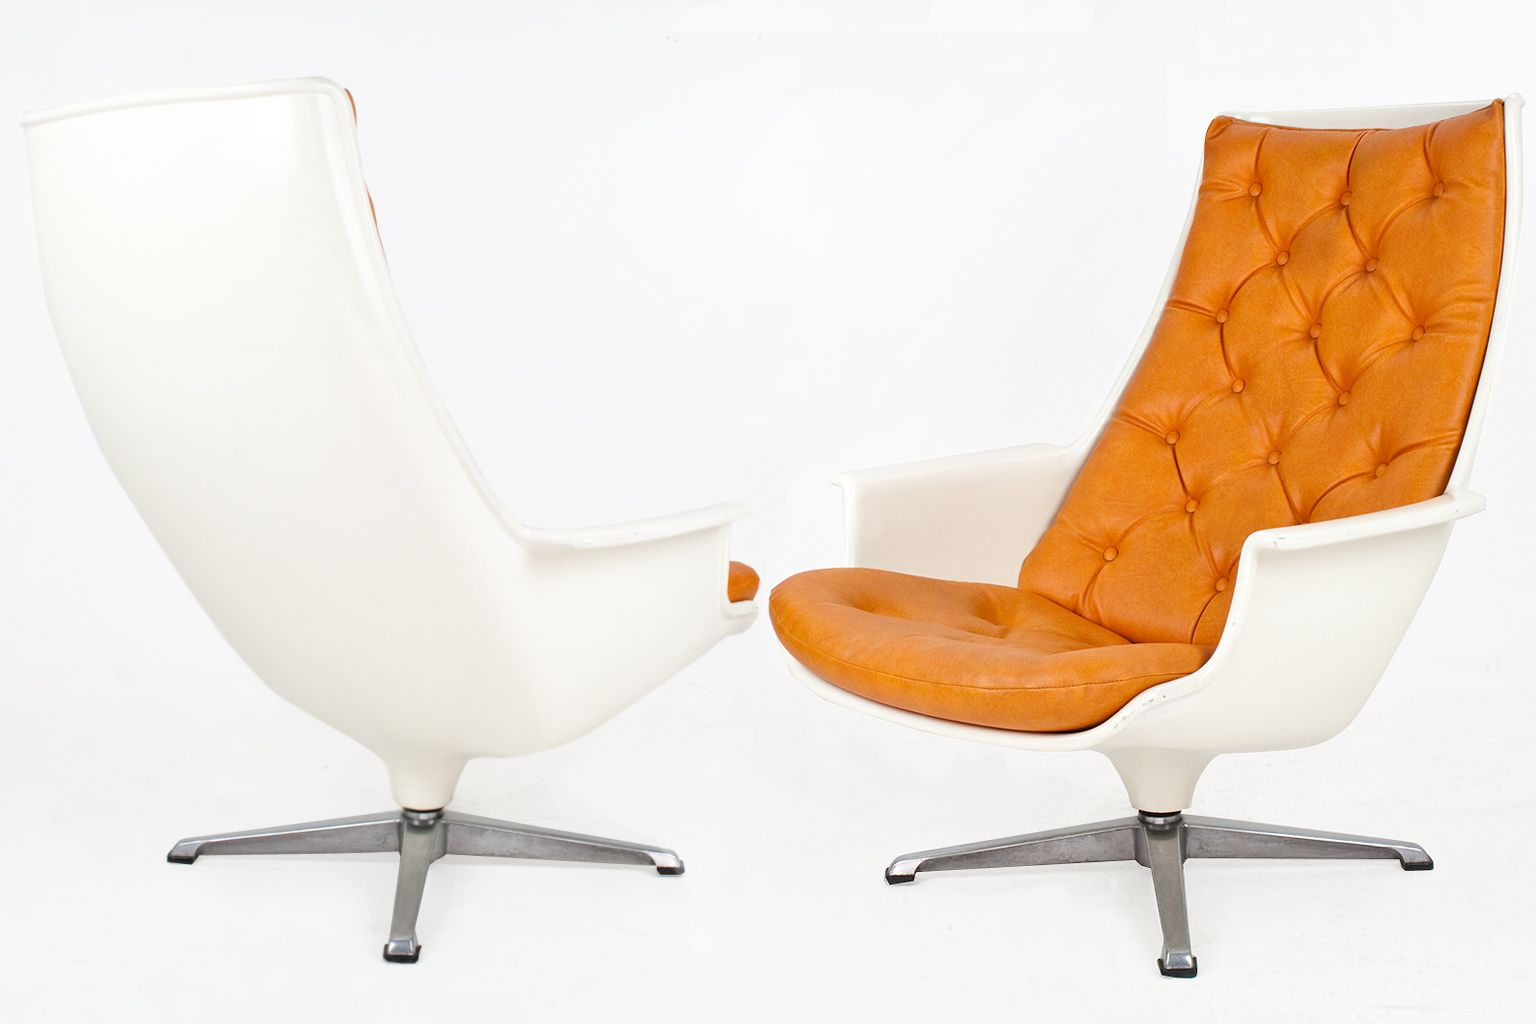 swivel chair price philippines trailer hitch swing swedish lounge chairs 1970s set of 2 for sale at